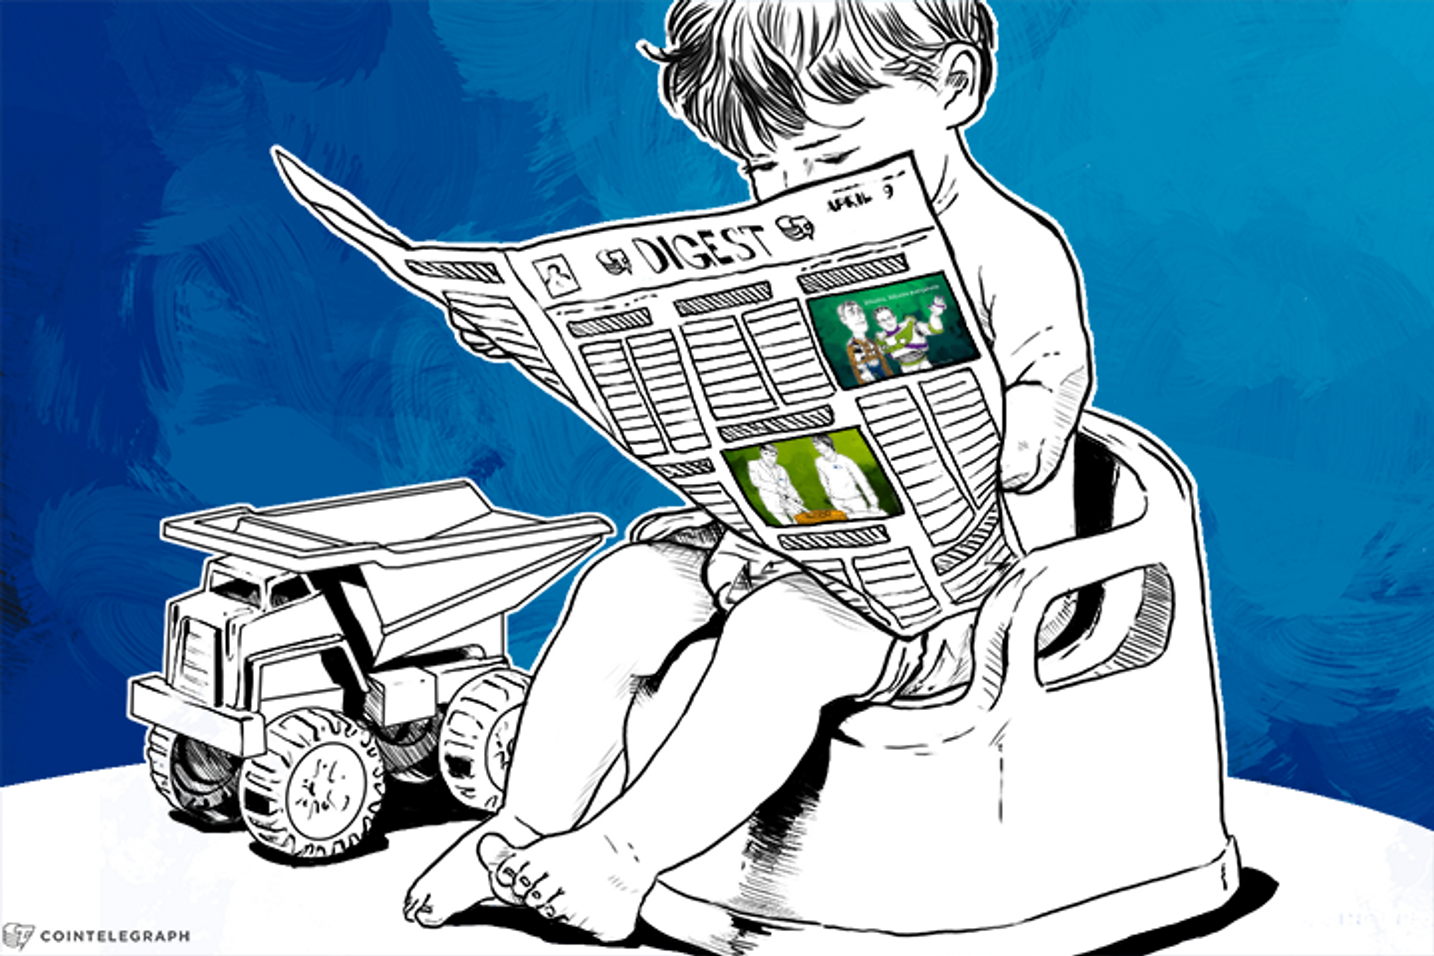 APRIL 9 DIGEST: Coinsetter acquires CAVIRTEX, Microsoft might be working on Payment Solution